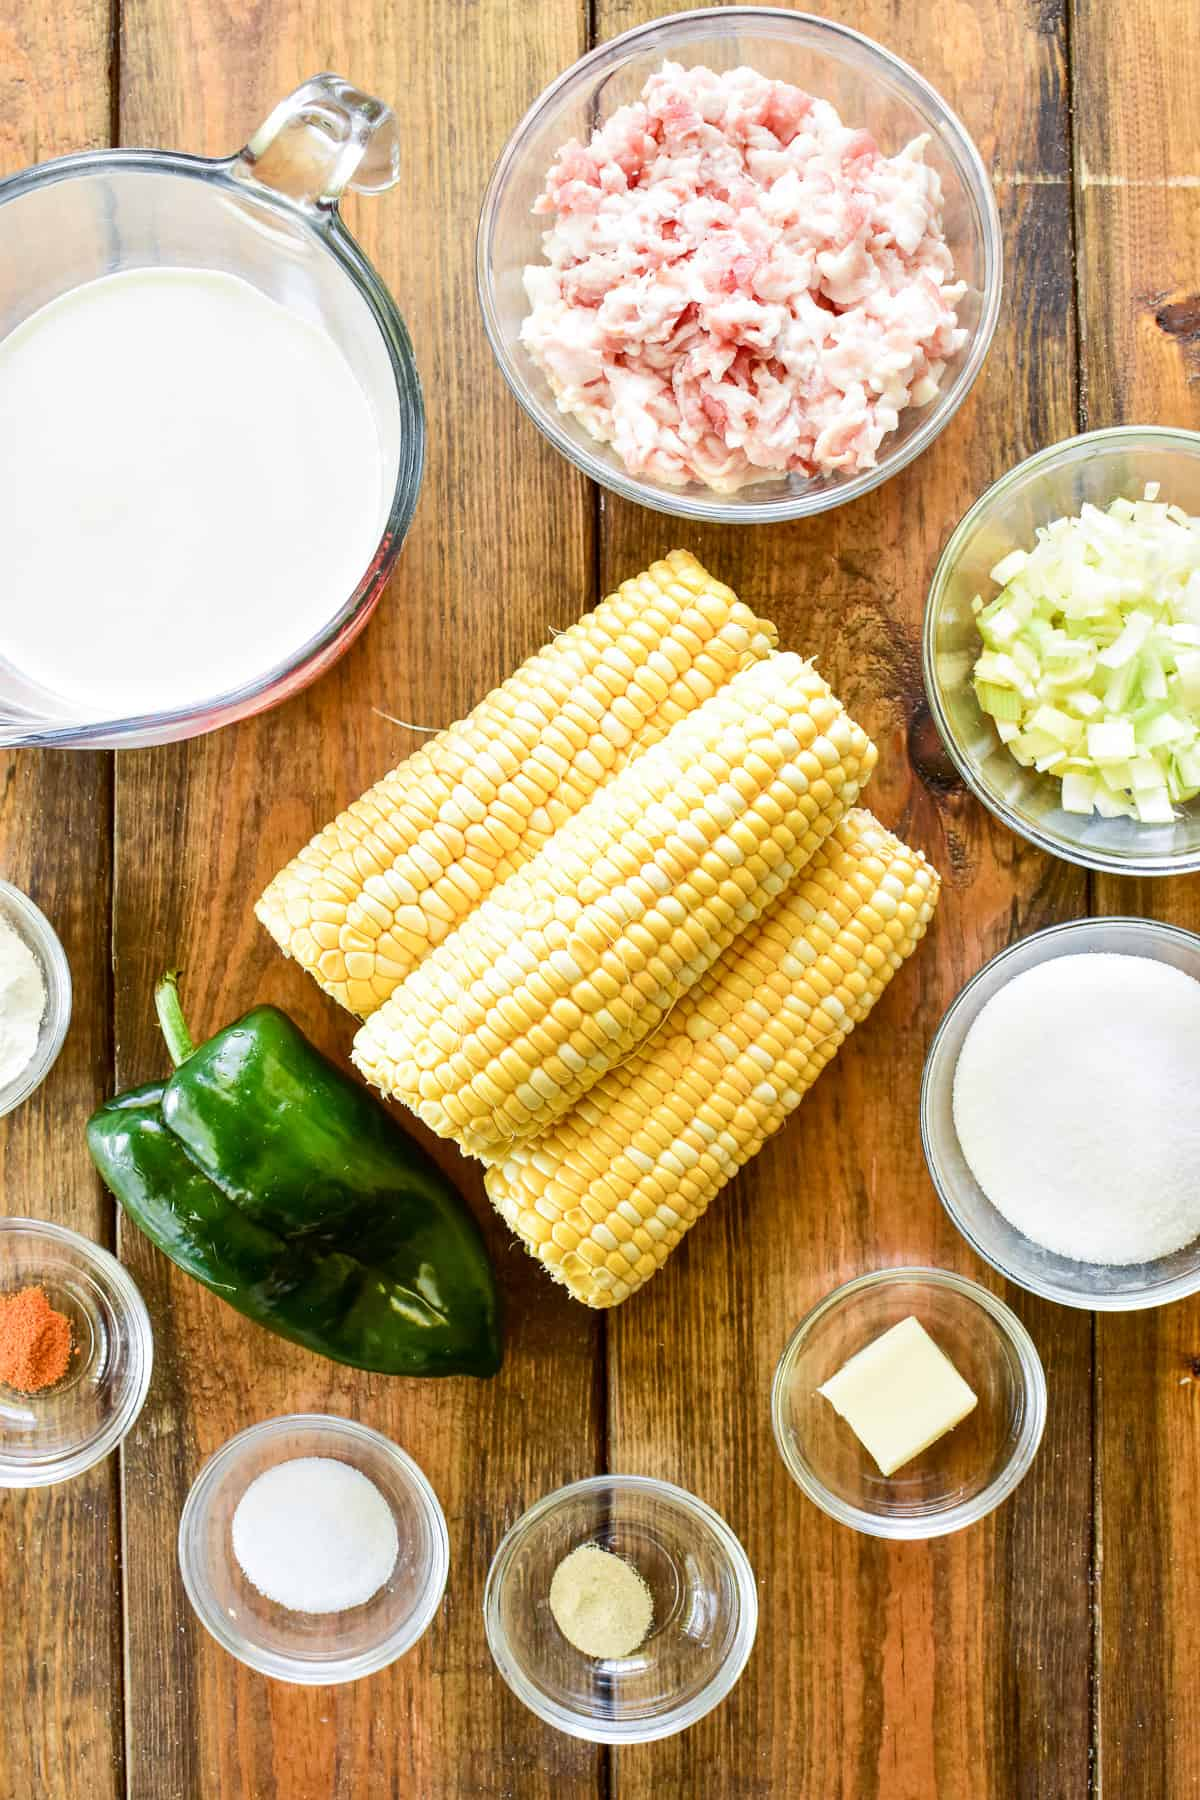 Creamed Corn ingredients on a wooden table